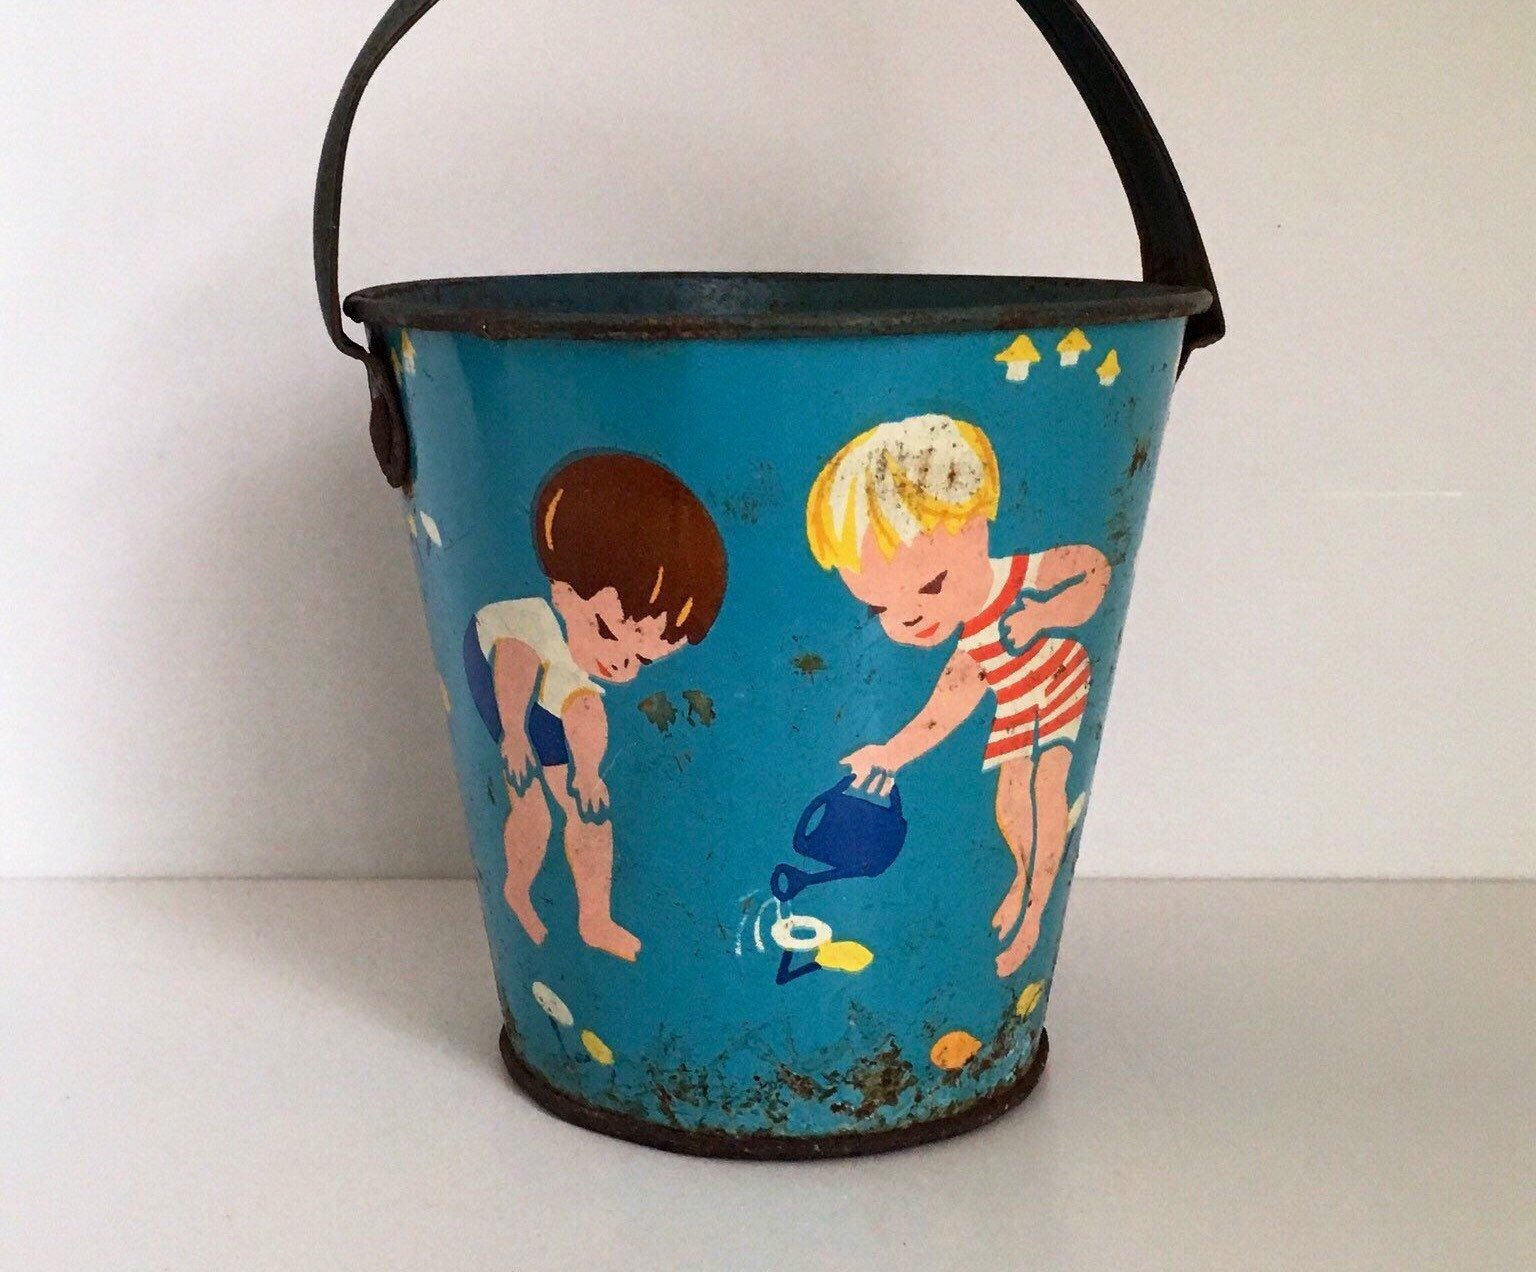 Vintage Tin Sand Bucket Blue Metal Pail Children And Flowers Shabby Chic Vintage Toy Etsy Toys Blue Birthday Ind Vintage Tins Vintage Toys Vintage Tin